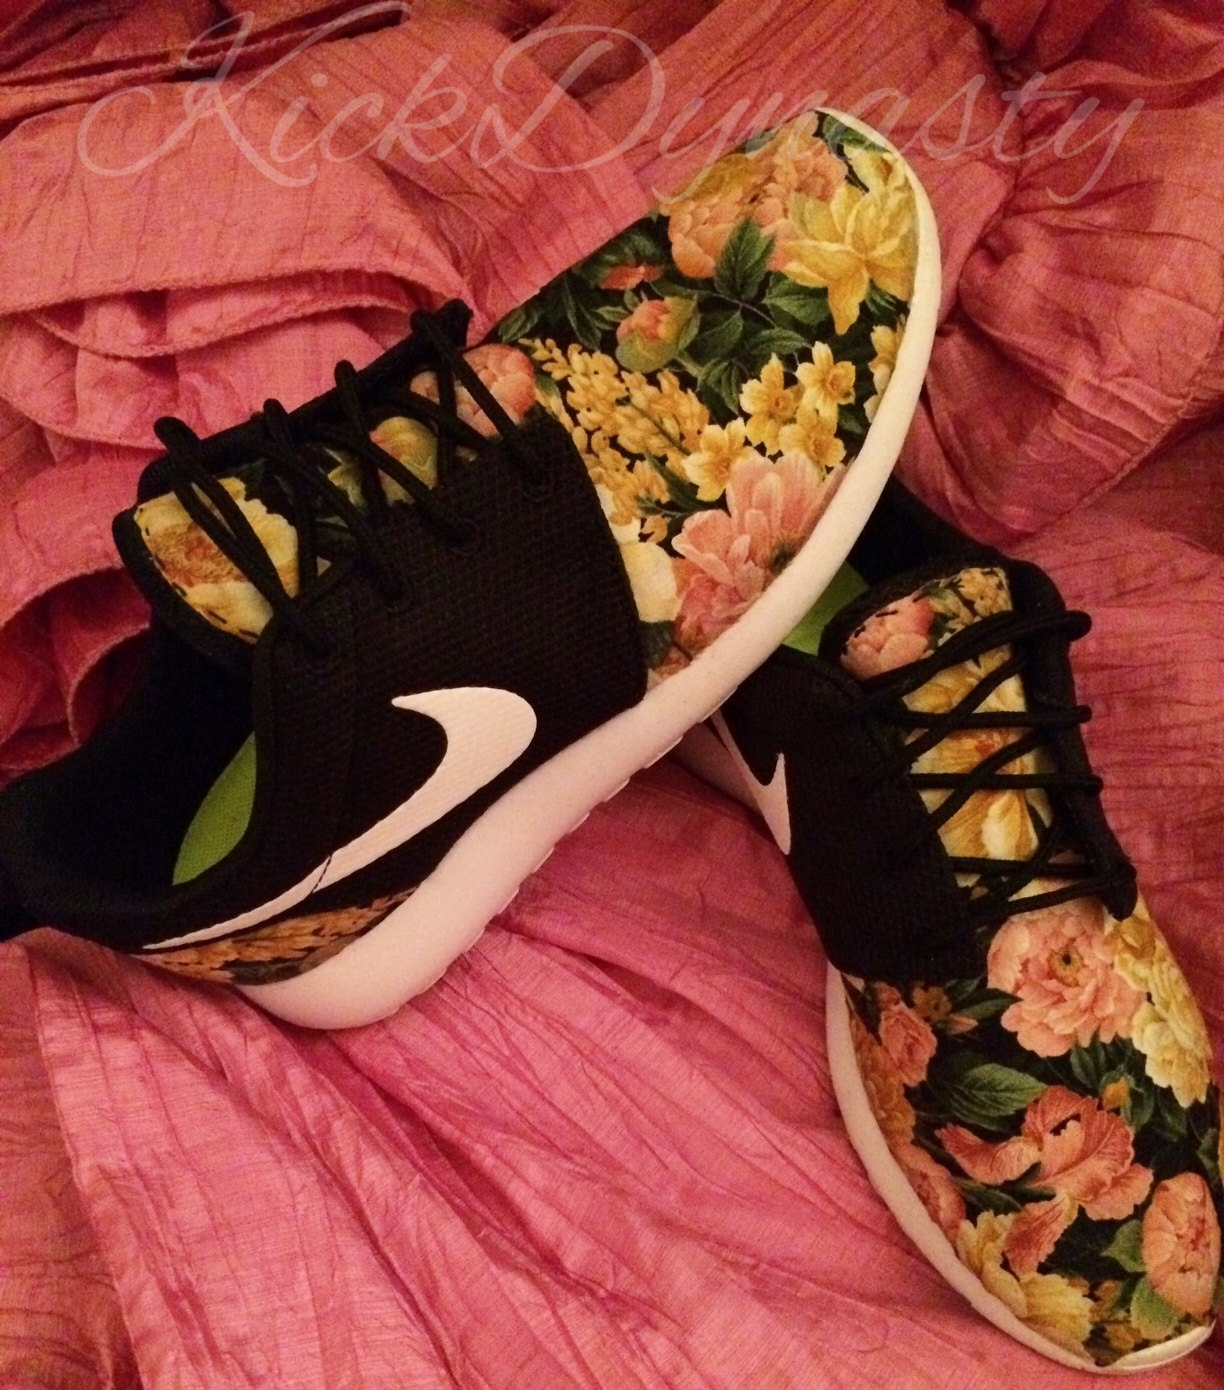 quality design 1266a 2829c 15% OFF SALE Nike Roshe Run Floral Sneakers Supreme Style ...